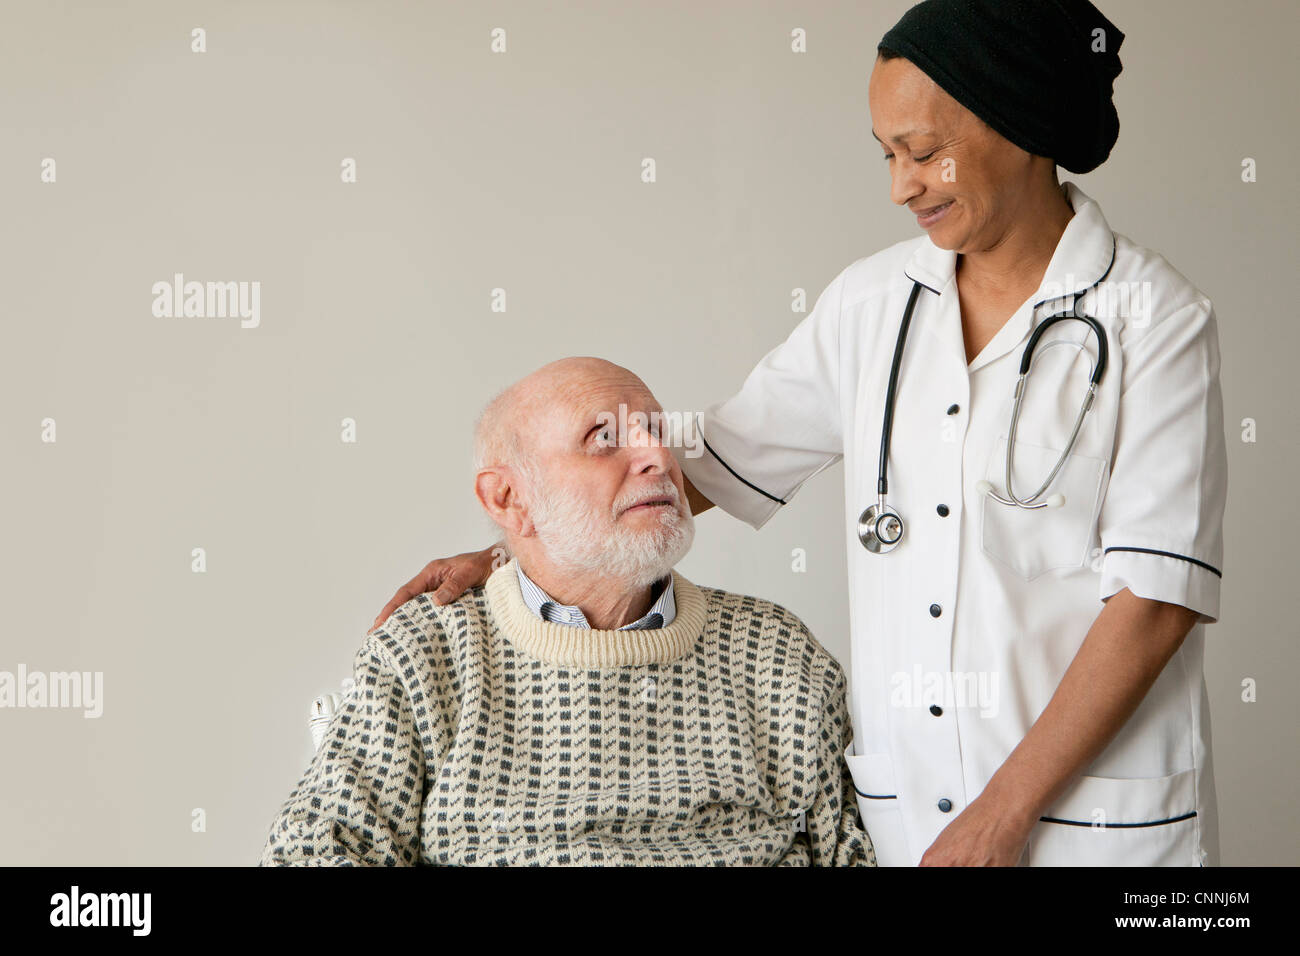 Caretaker smiling with older man Stock Photo